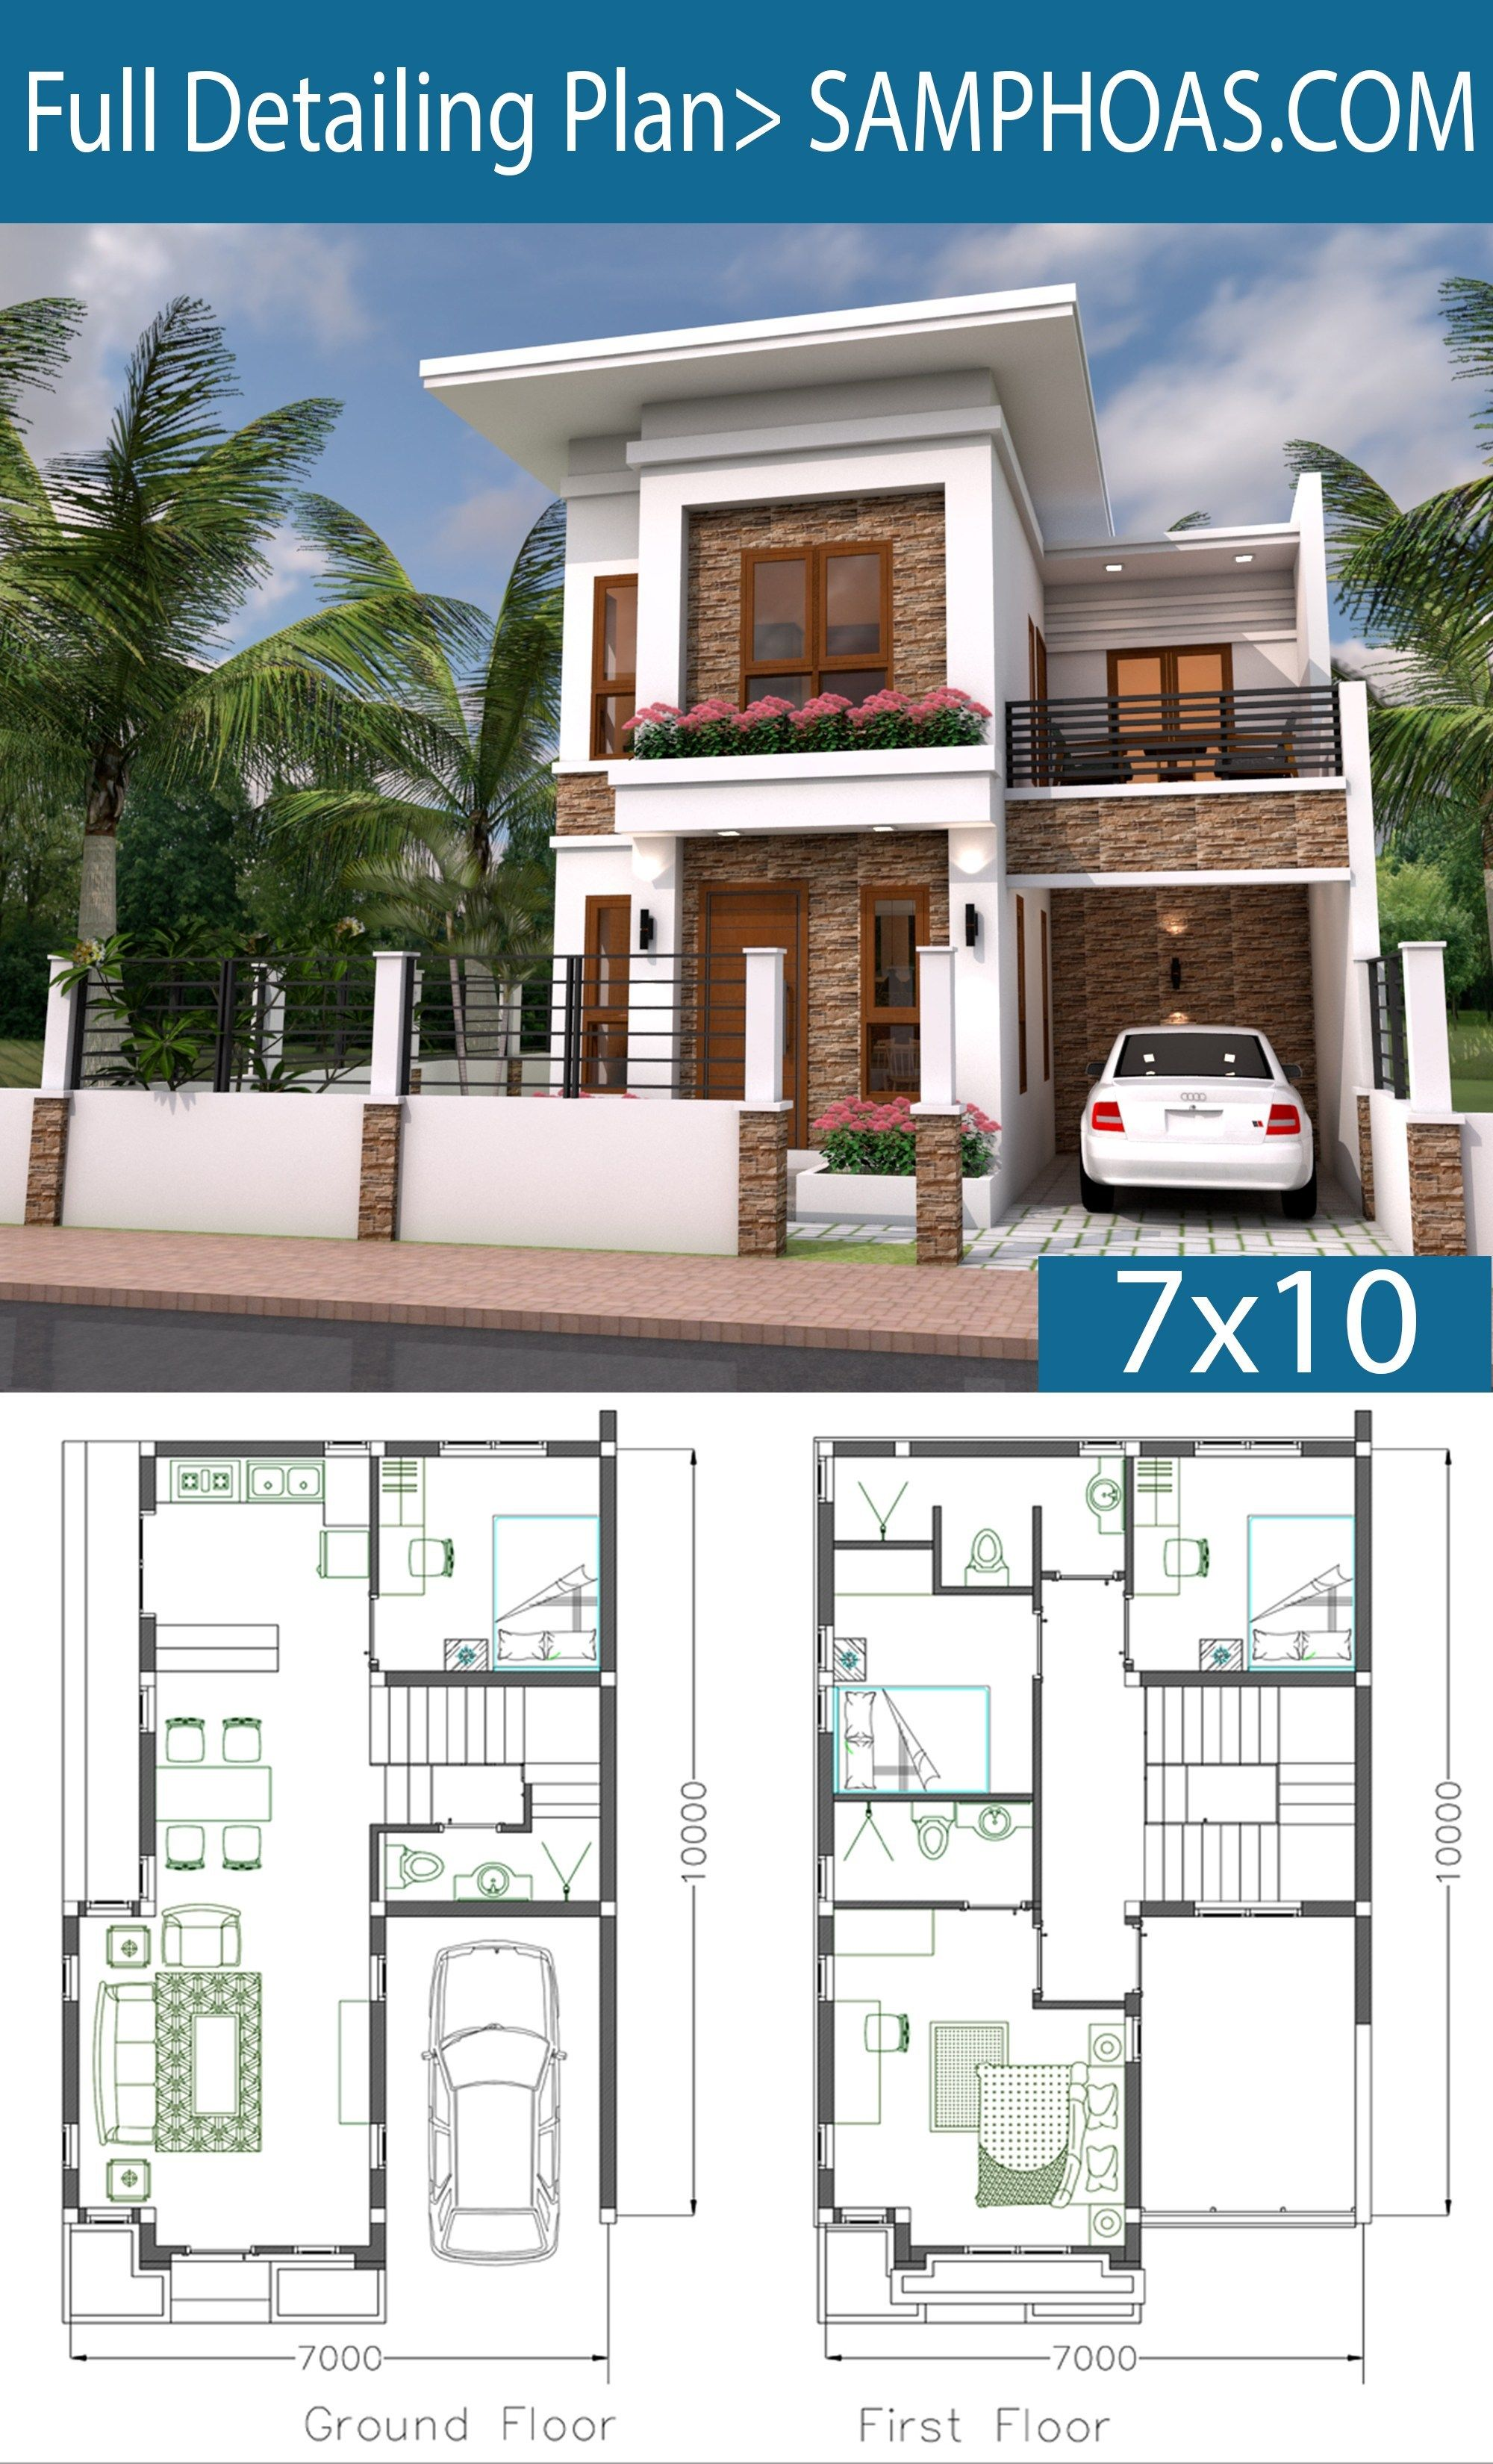 Sketchup Speed Build Home Plan 7x10 Casas Modernas Arquitectura